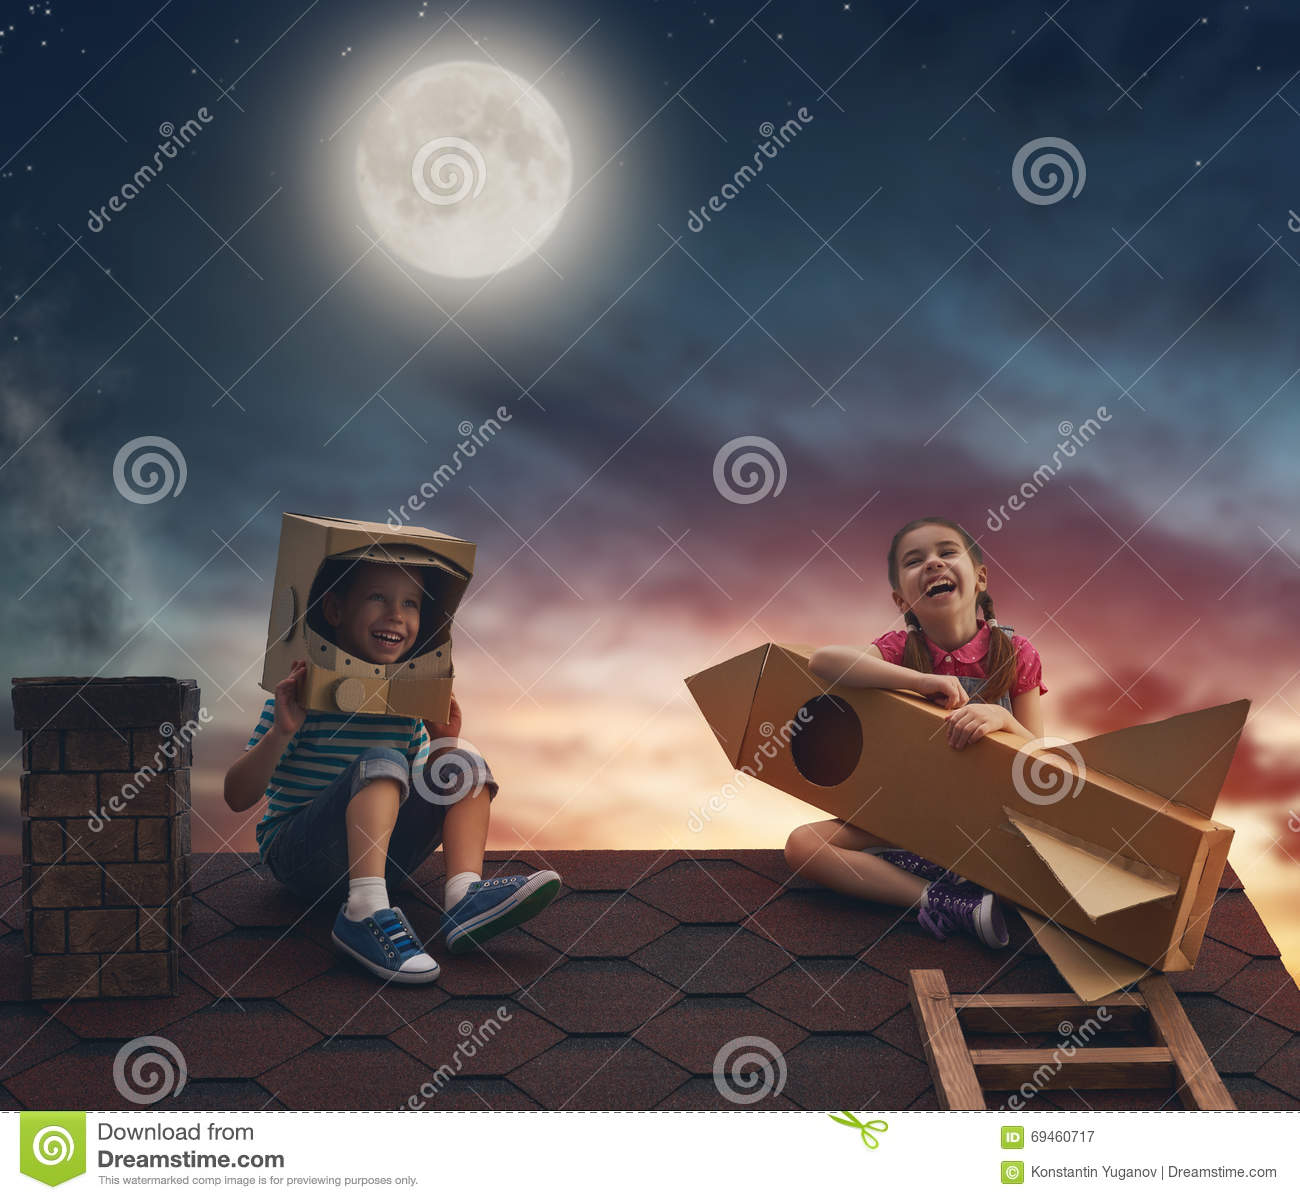 Kids at night with moon royalty free stock photography image - Royalty Free Stock Photo Children Playing On The Roof Stock Photo